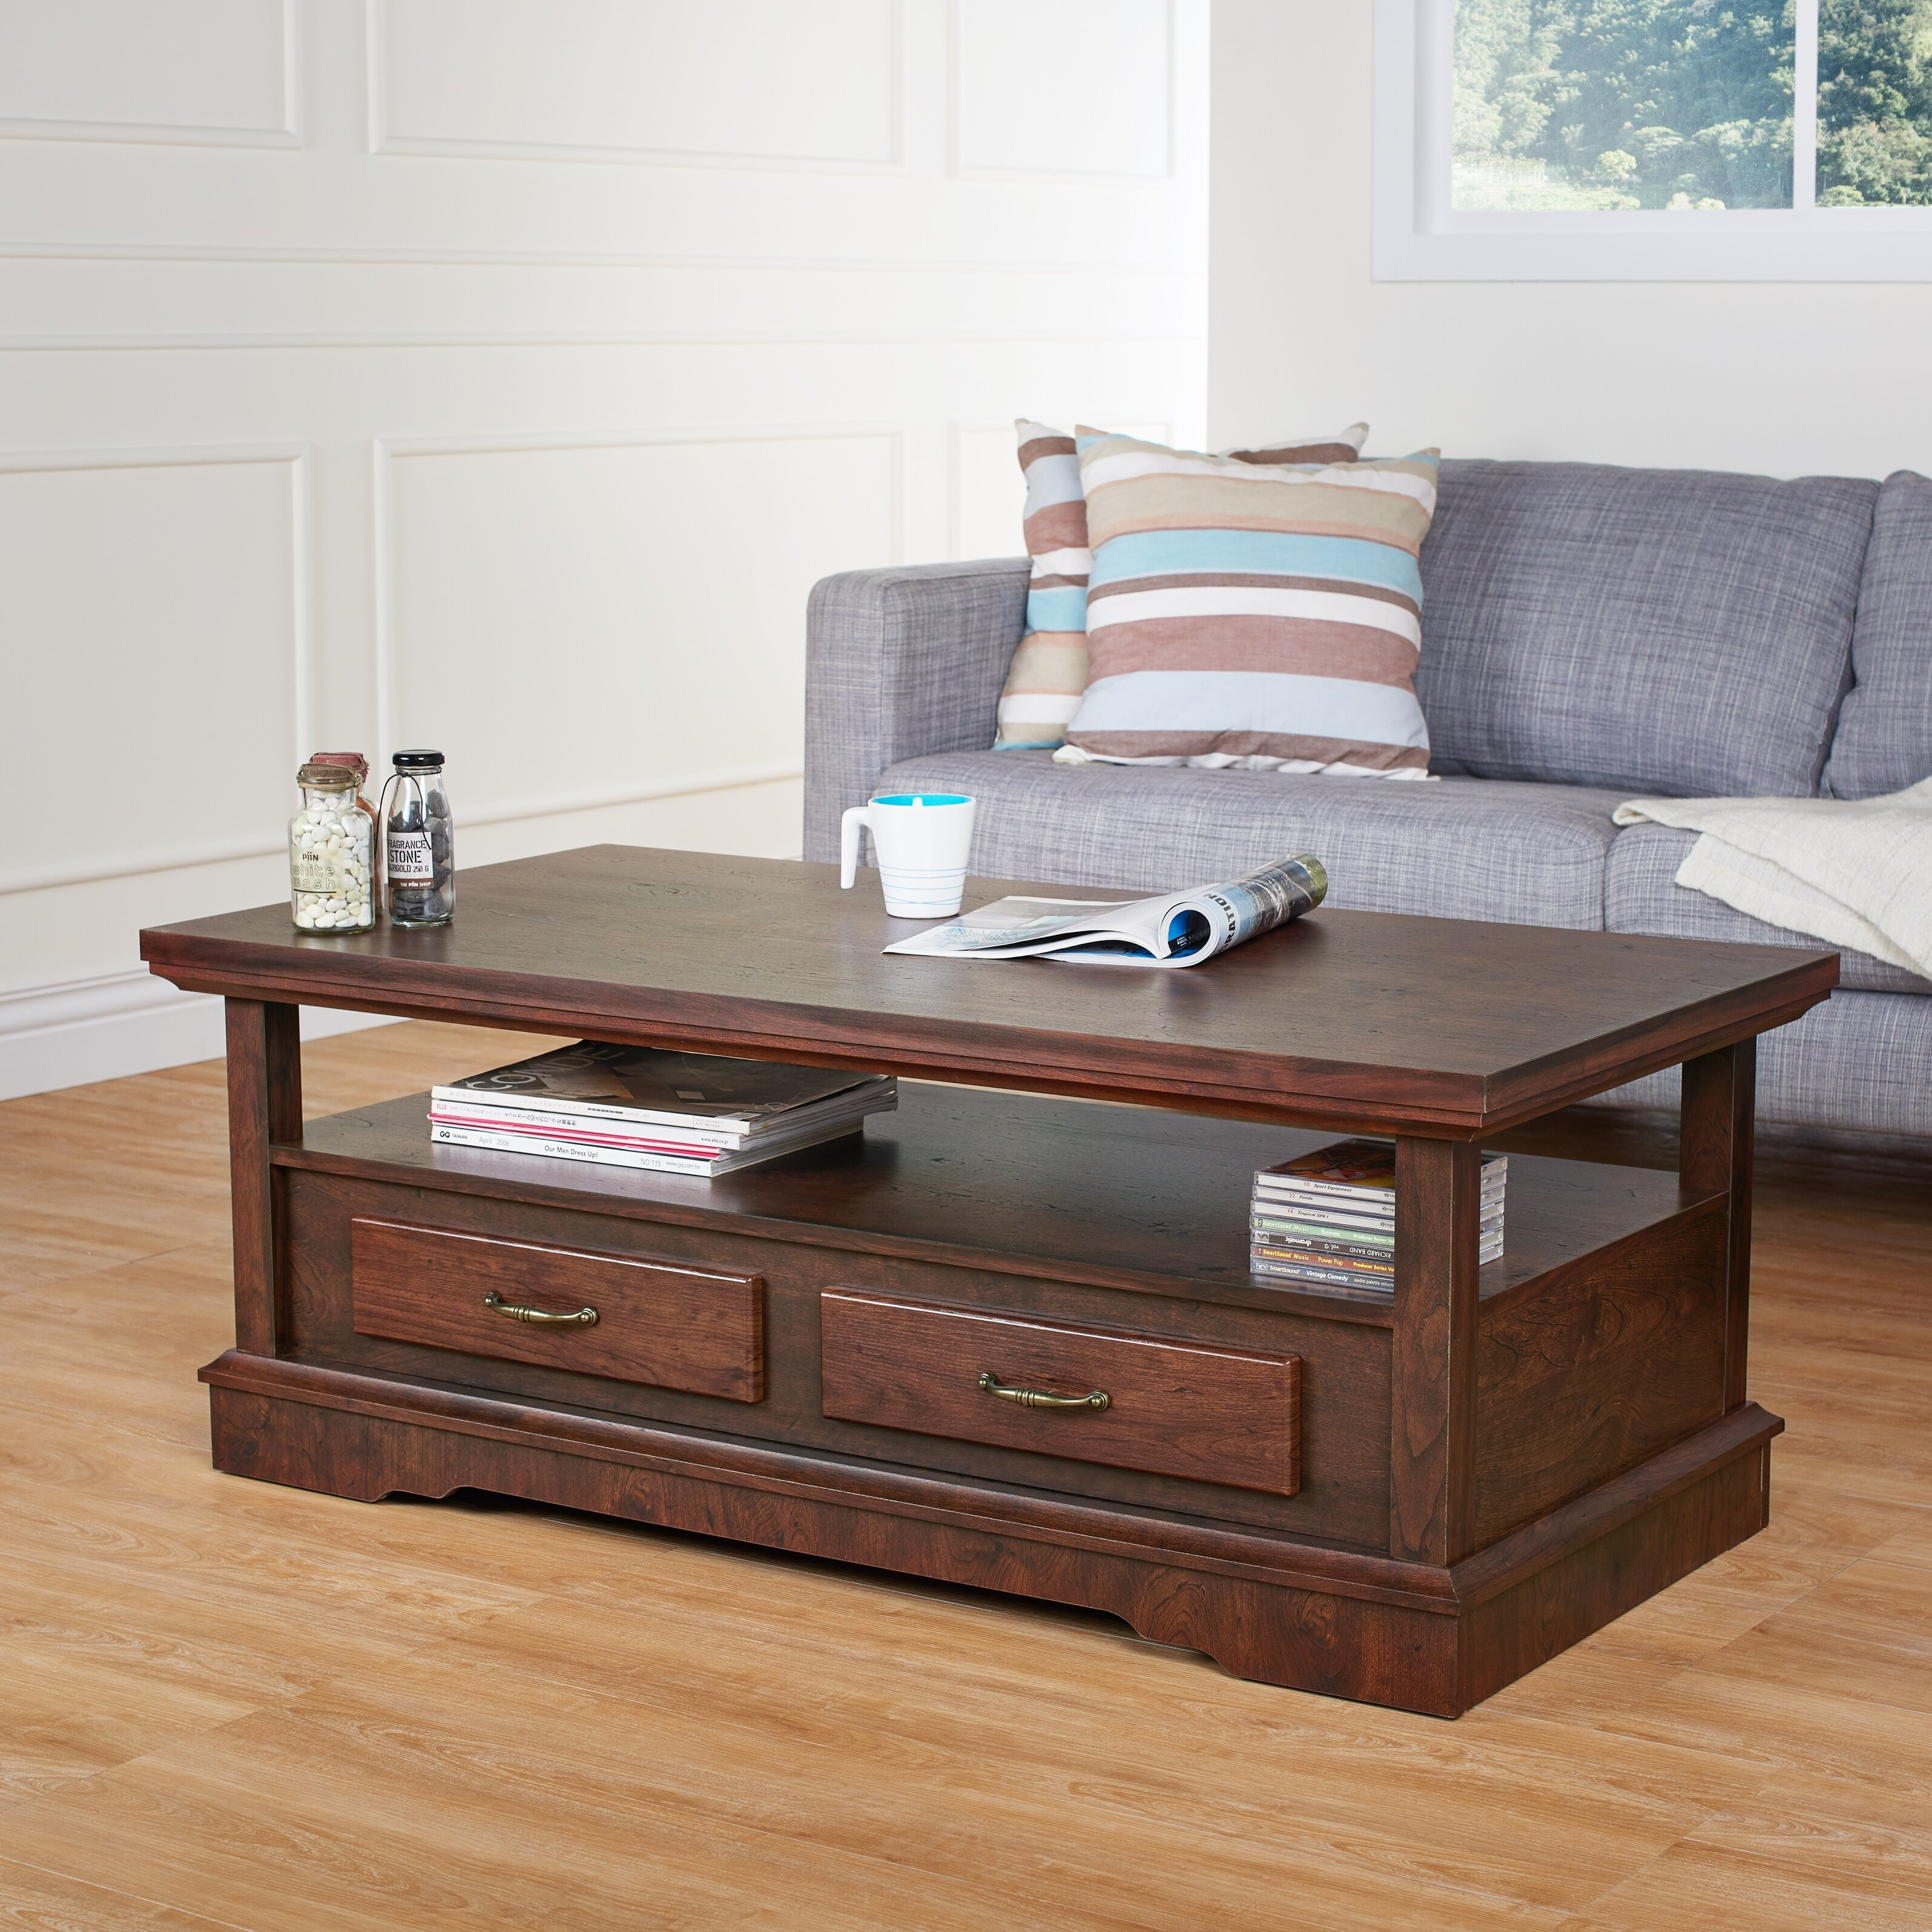 Hokku Designs Manuella Coffee Table Reviews Wayfair